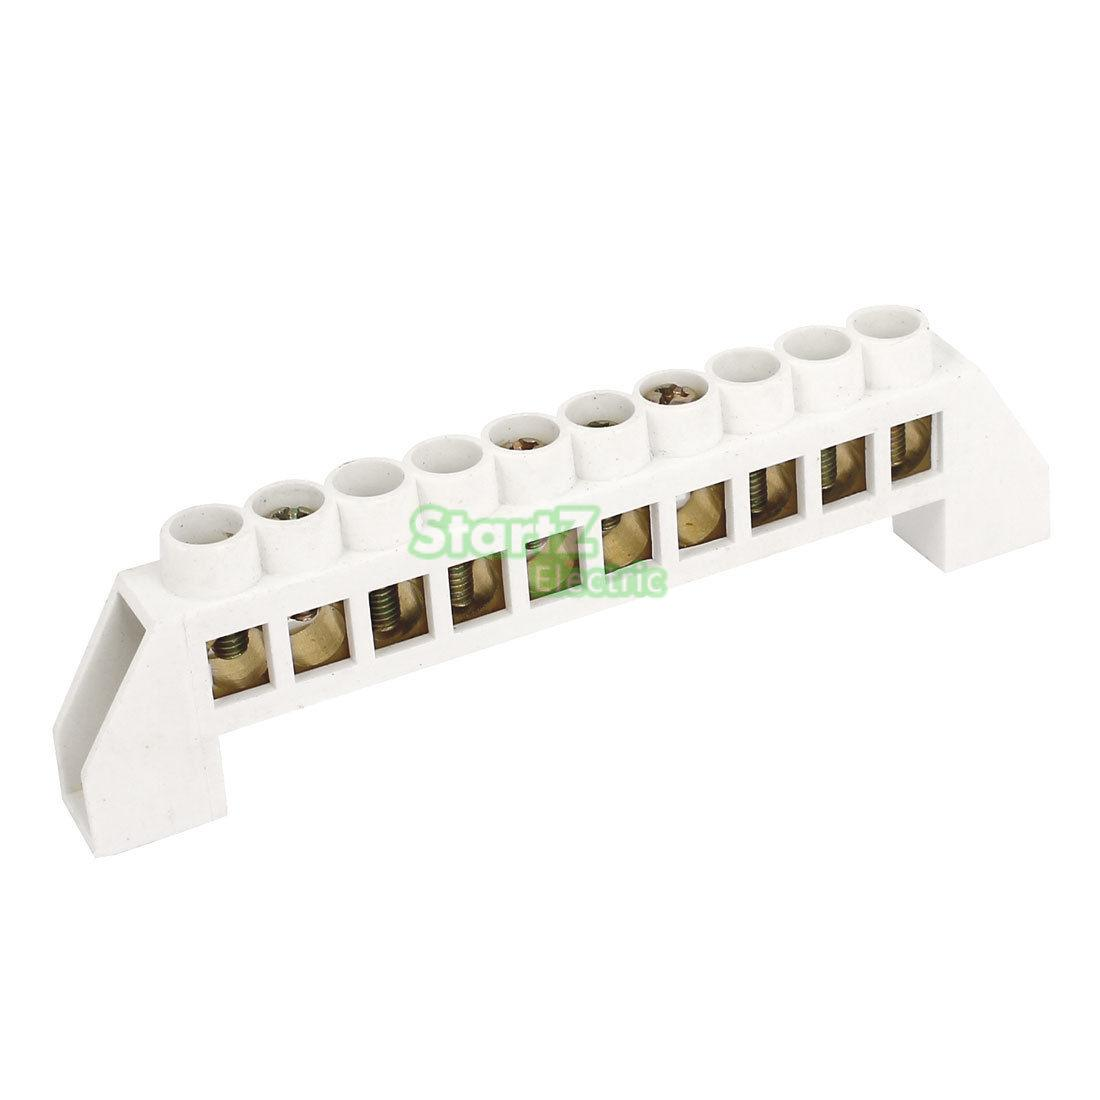 2PCS White Bridge Design Zero Line 10 Position Copper Grounding Strip Terminal Block Connector